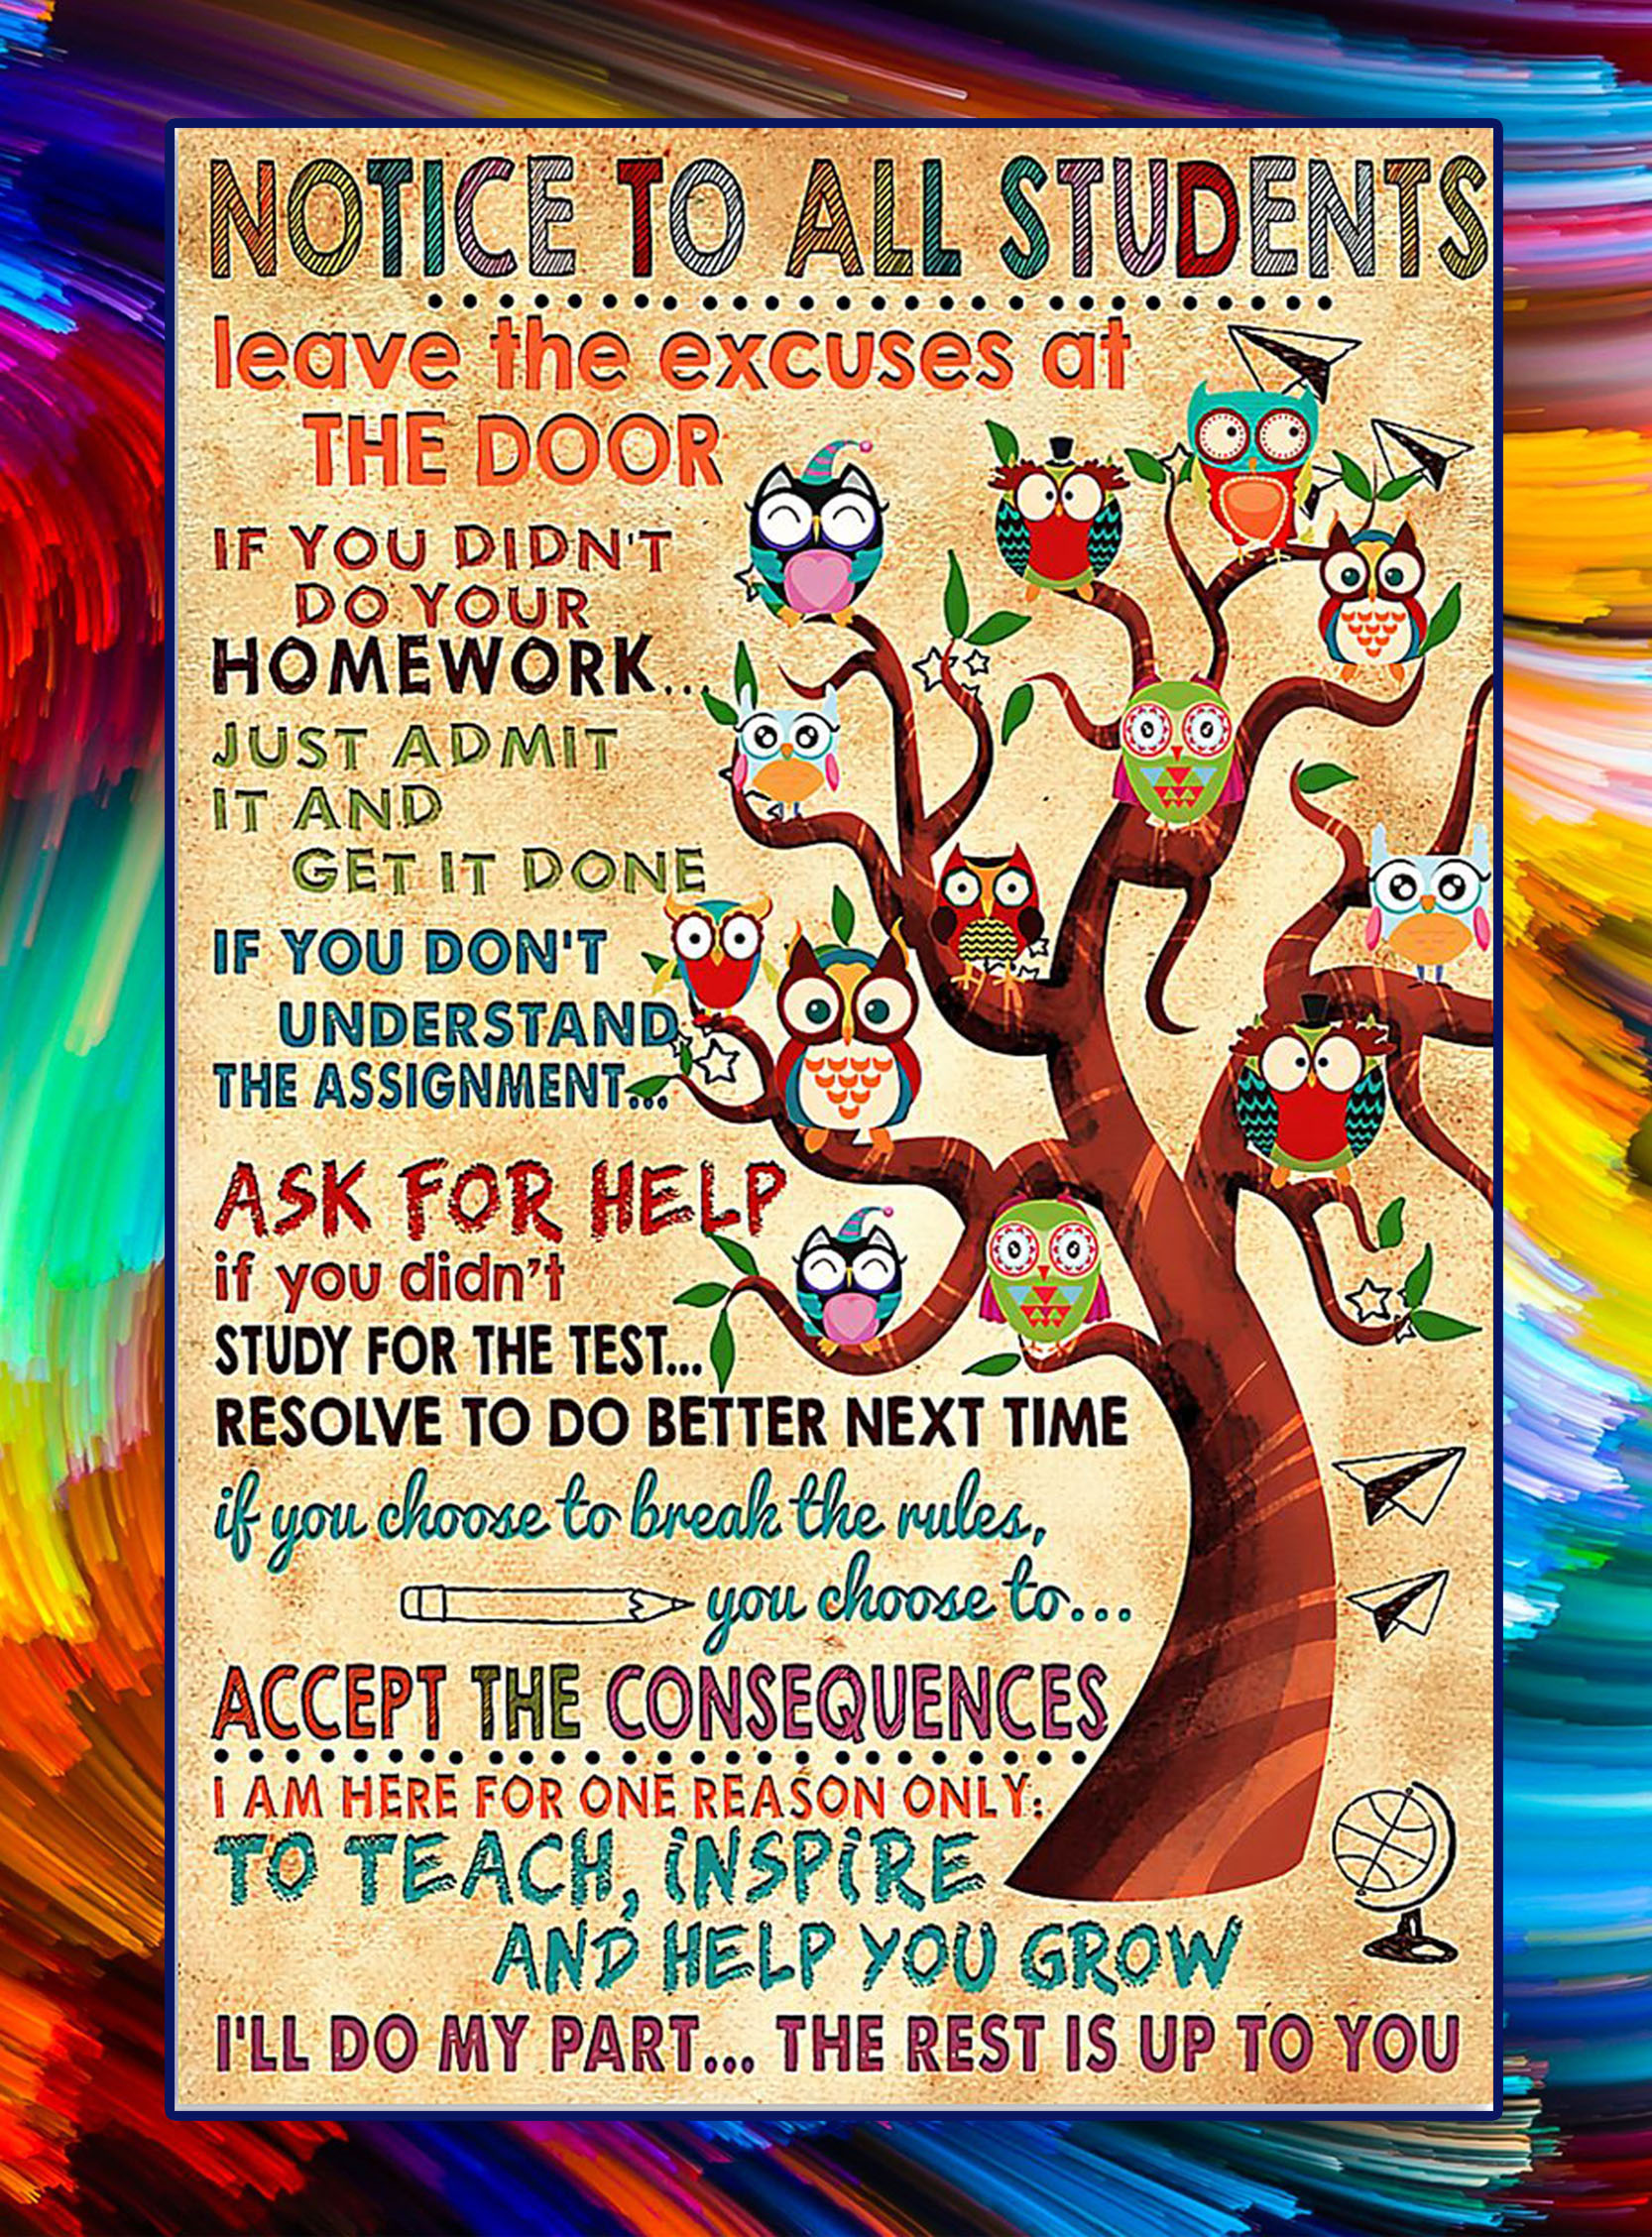 Notice to all students teacher owl poster - A2